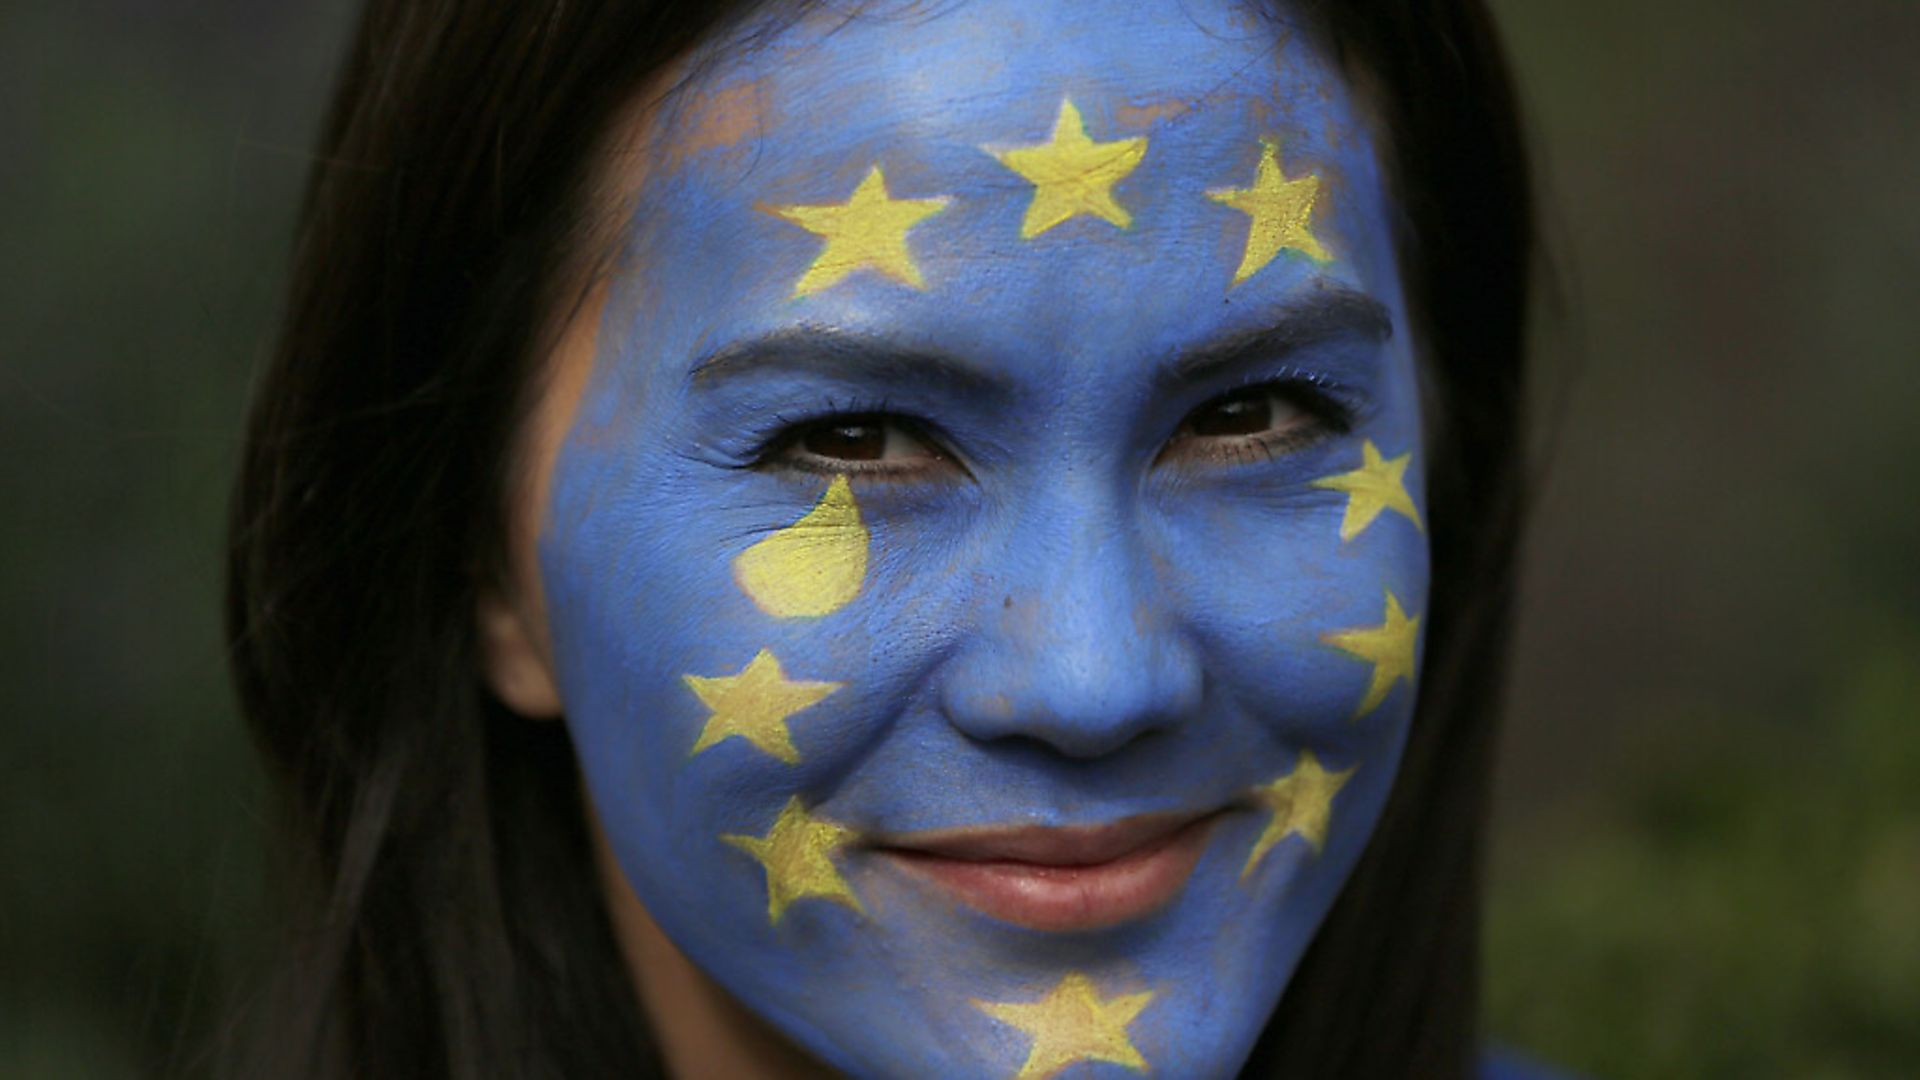 Mike Hind has 10 ways Remainers could win a second referendum. Picture: Daniel Leal-Olivas/PA. - Credit: PA Wire/PA Images